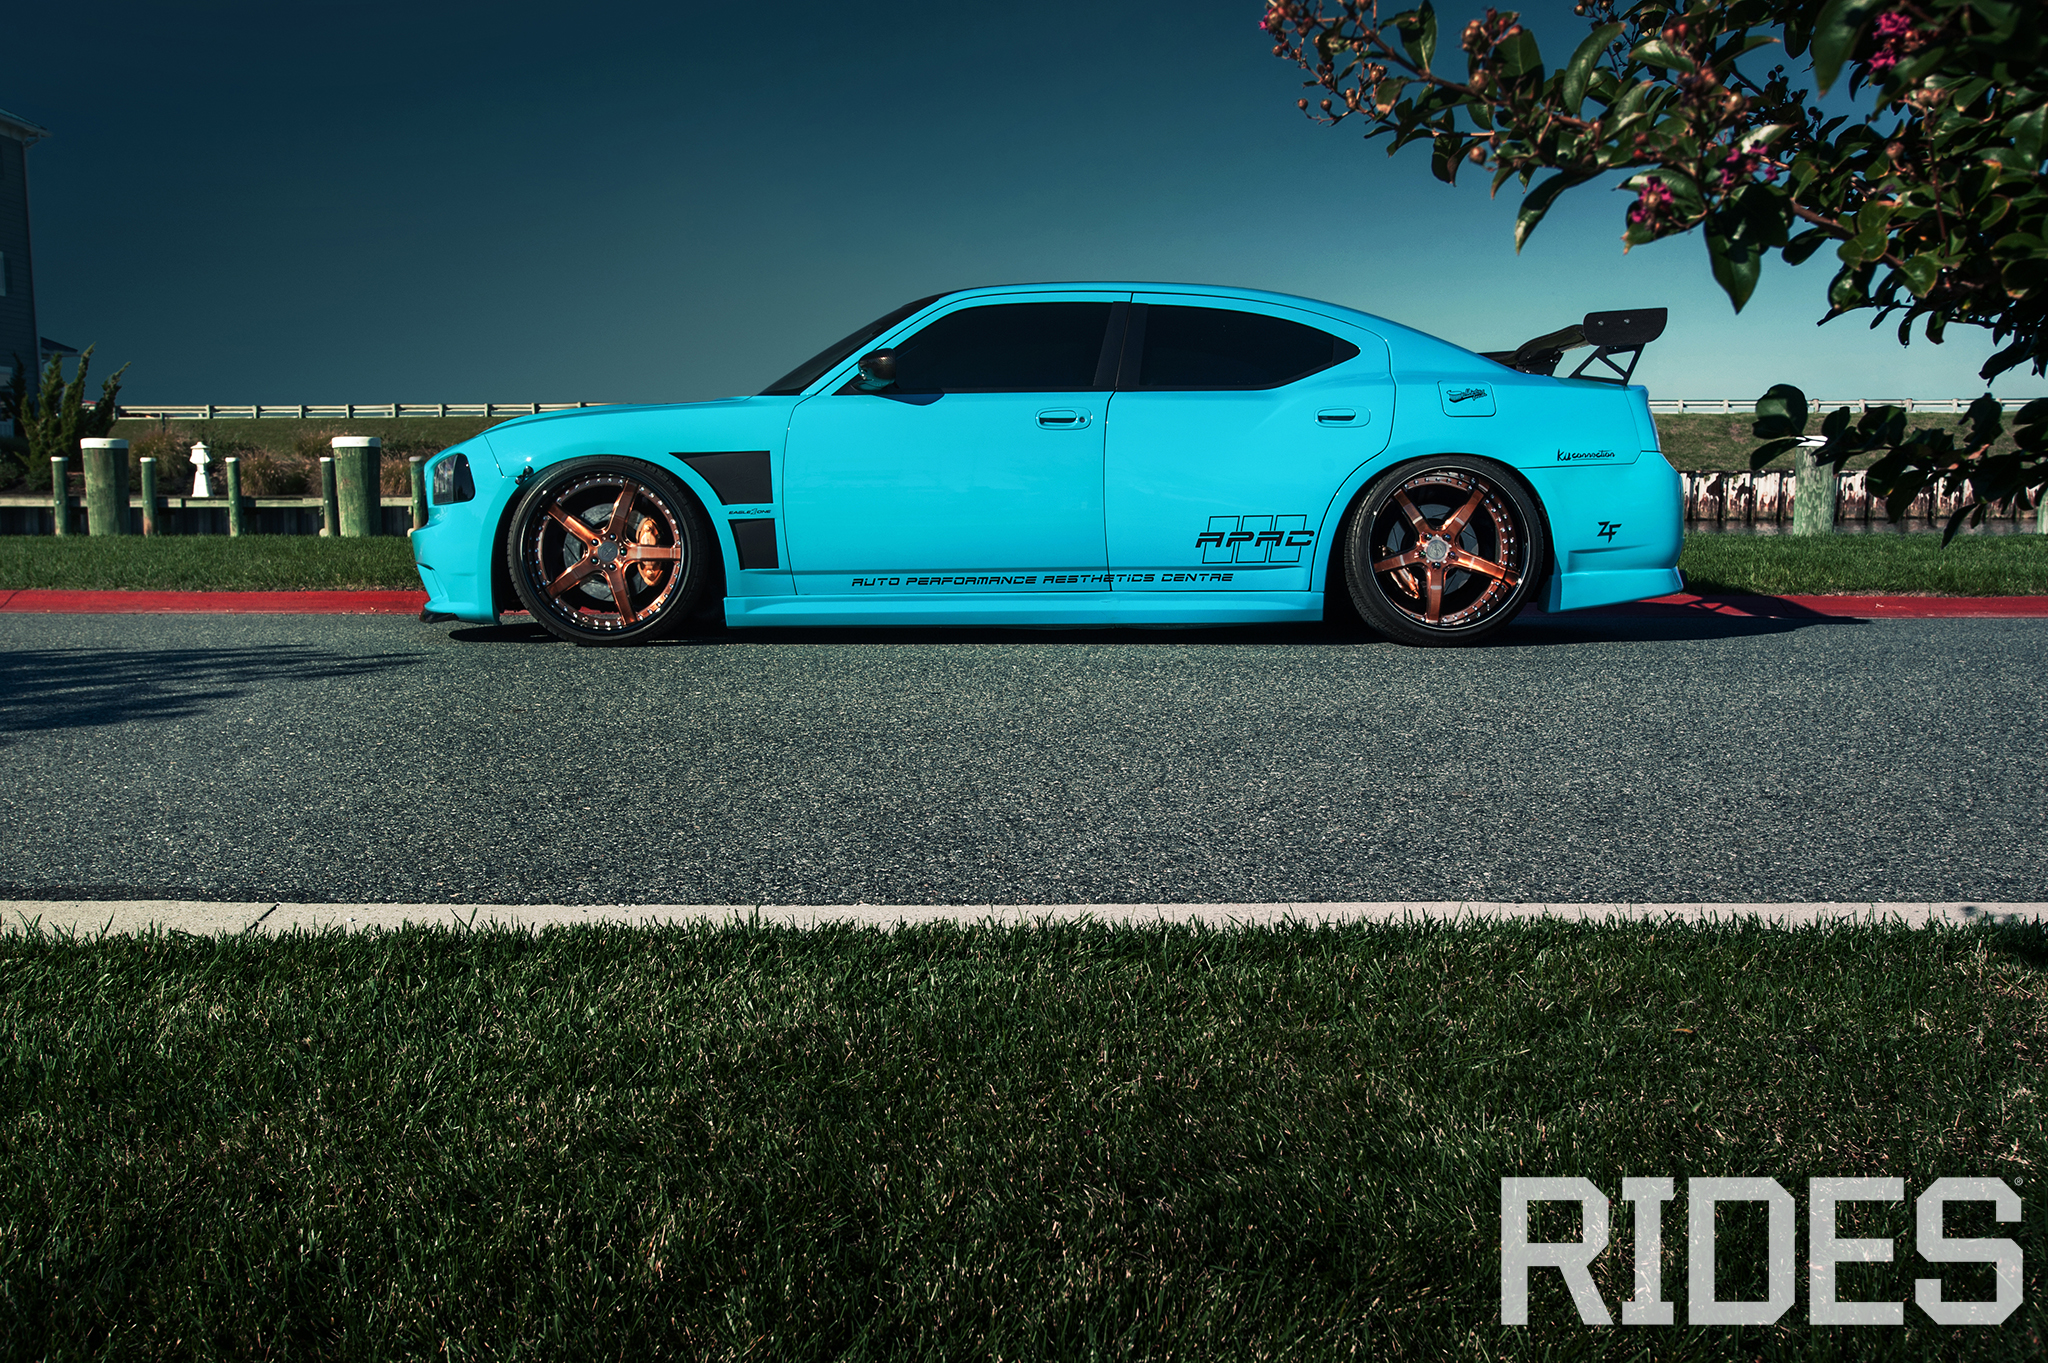 Blue Blooded 2006 Dodge Charger Srt8